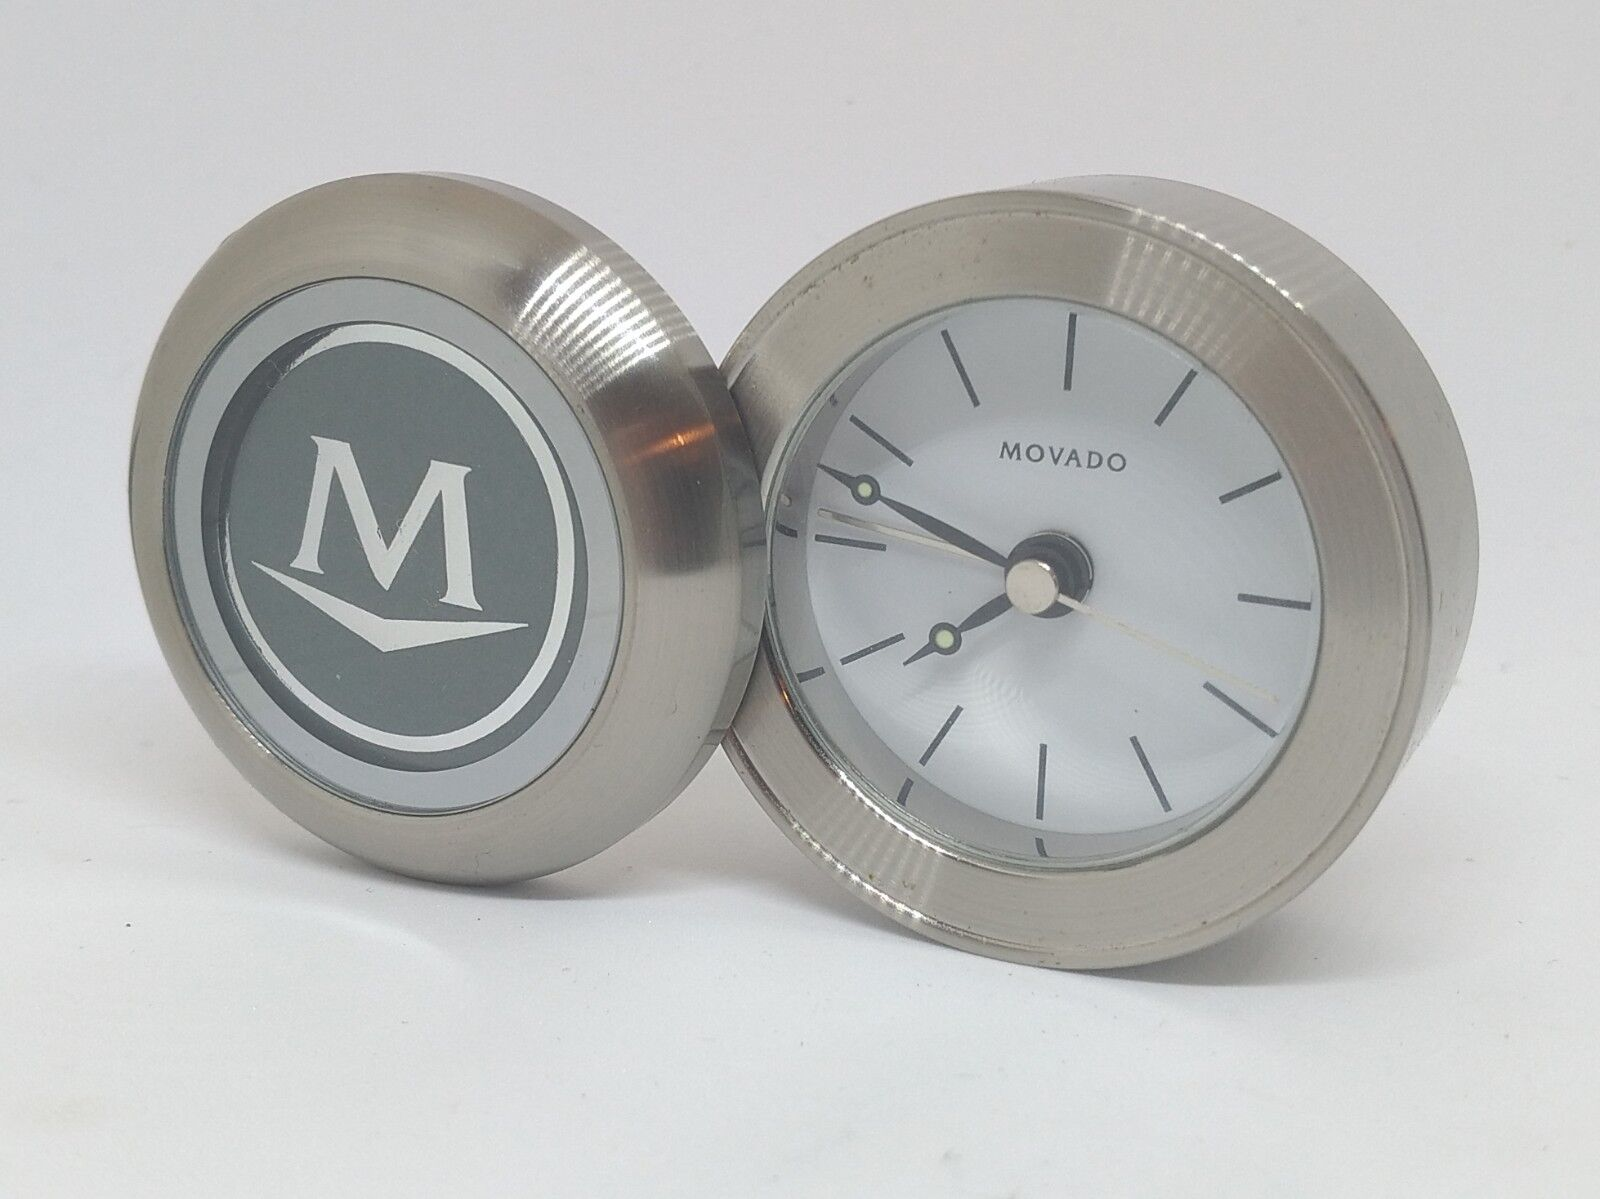 Movado Stainless Steel Travel Desk Quartz Folding Flip Alarm Clock